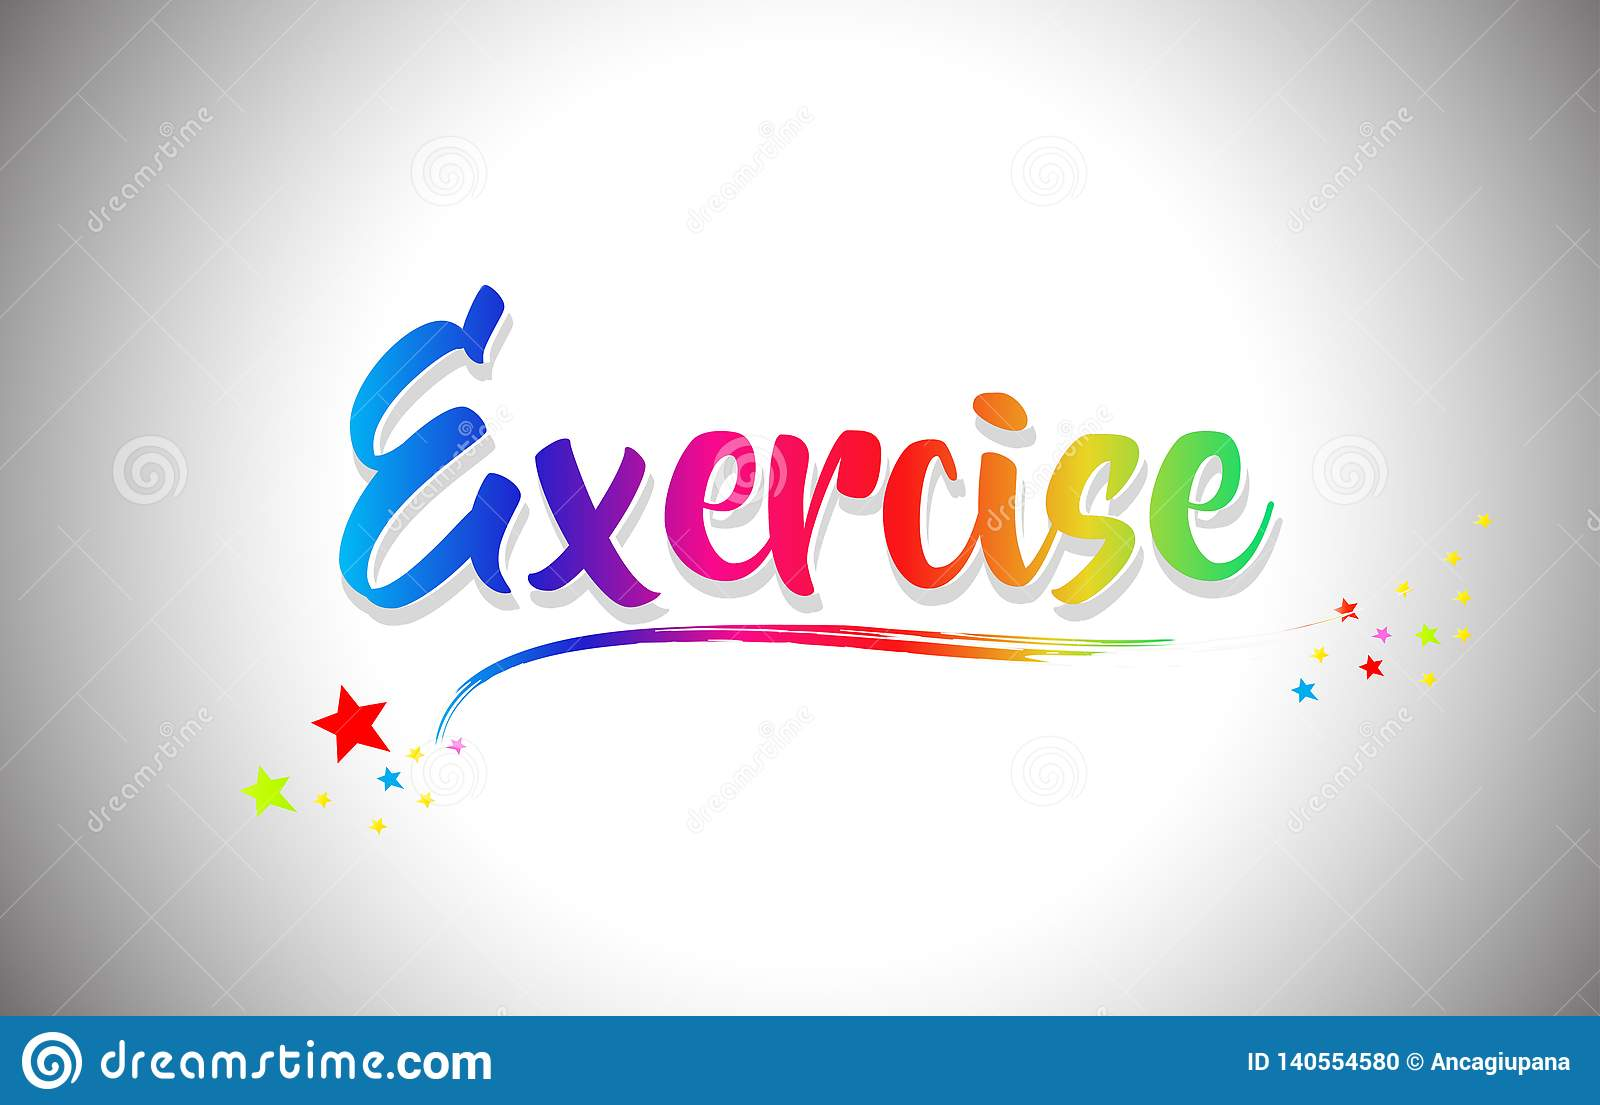 Exercise Handwritten Word Text With Rainbow Colors And Vibrant Swoosh Stock Vector Illustration Of Advertising Creative 140554580